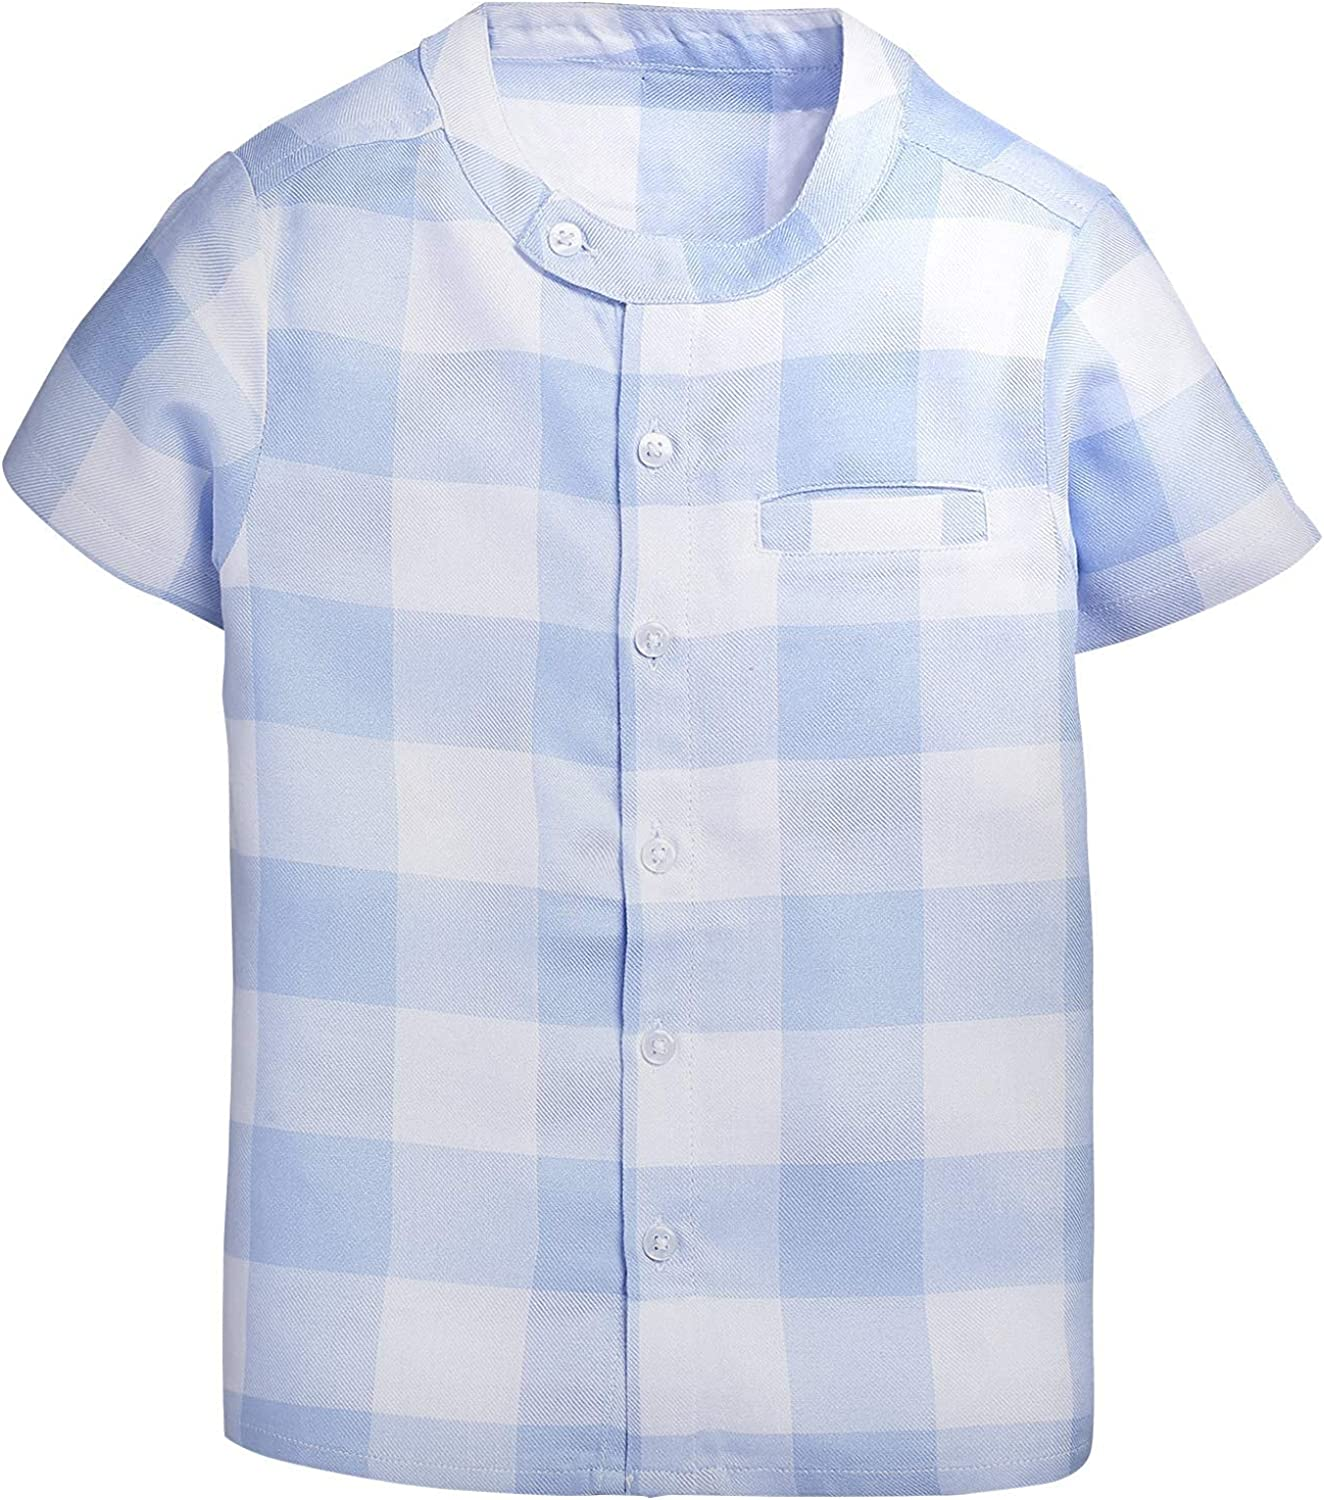 Oonico Chinese Collar Boys Shirt Blue and White Plaid Shirt/Light Blue and White Plaid Chinese Collar Shirt(Light Blue,2Y-3Y)